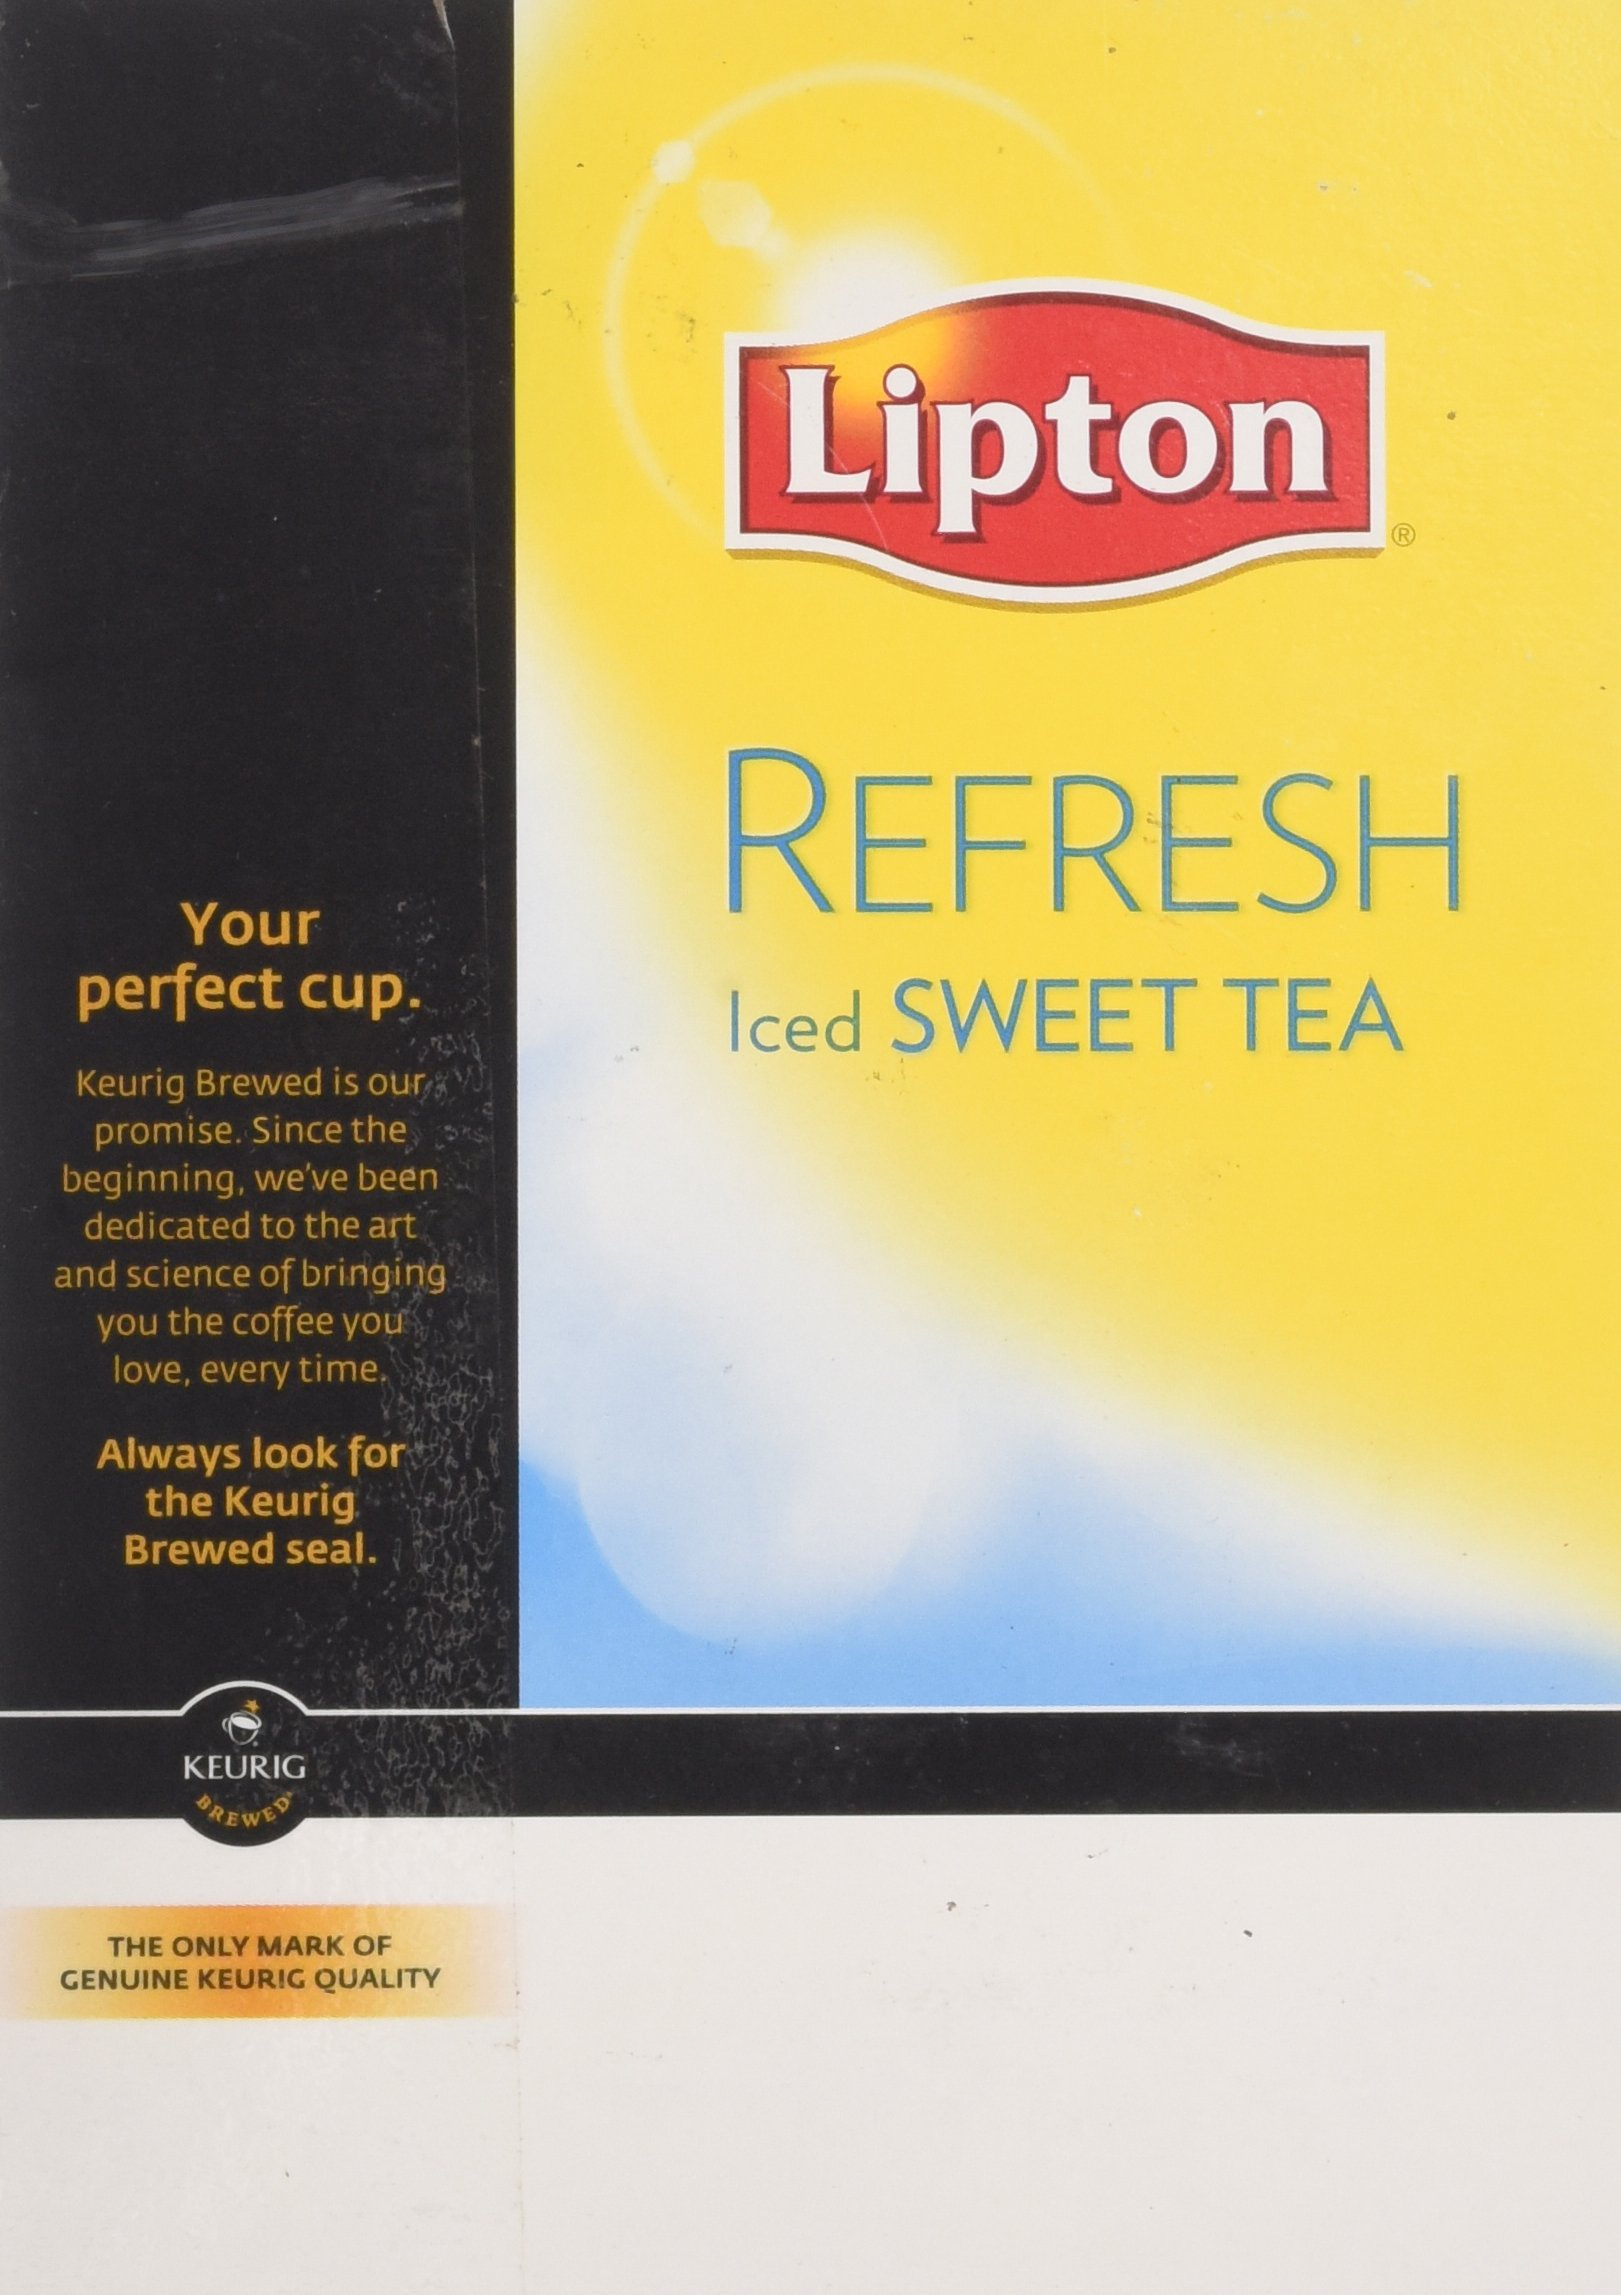 Lipton Refresh Iced Sweet Tea K-Cup Portion Pack for Keurig Brewers, 88 Count by Lipton